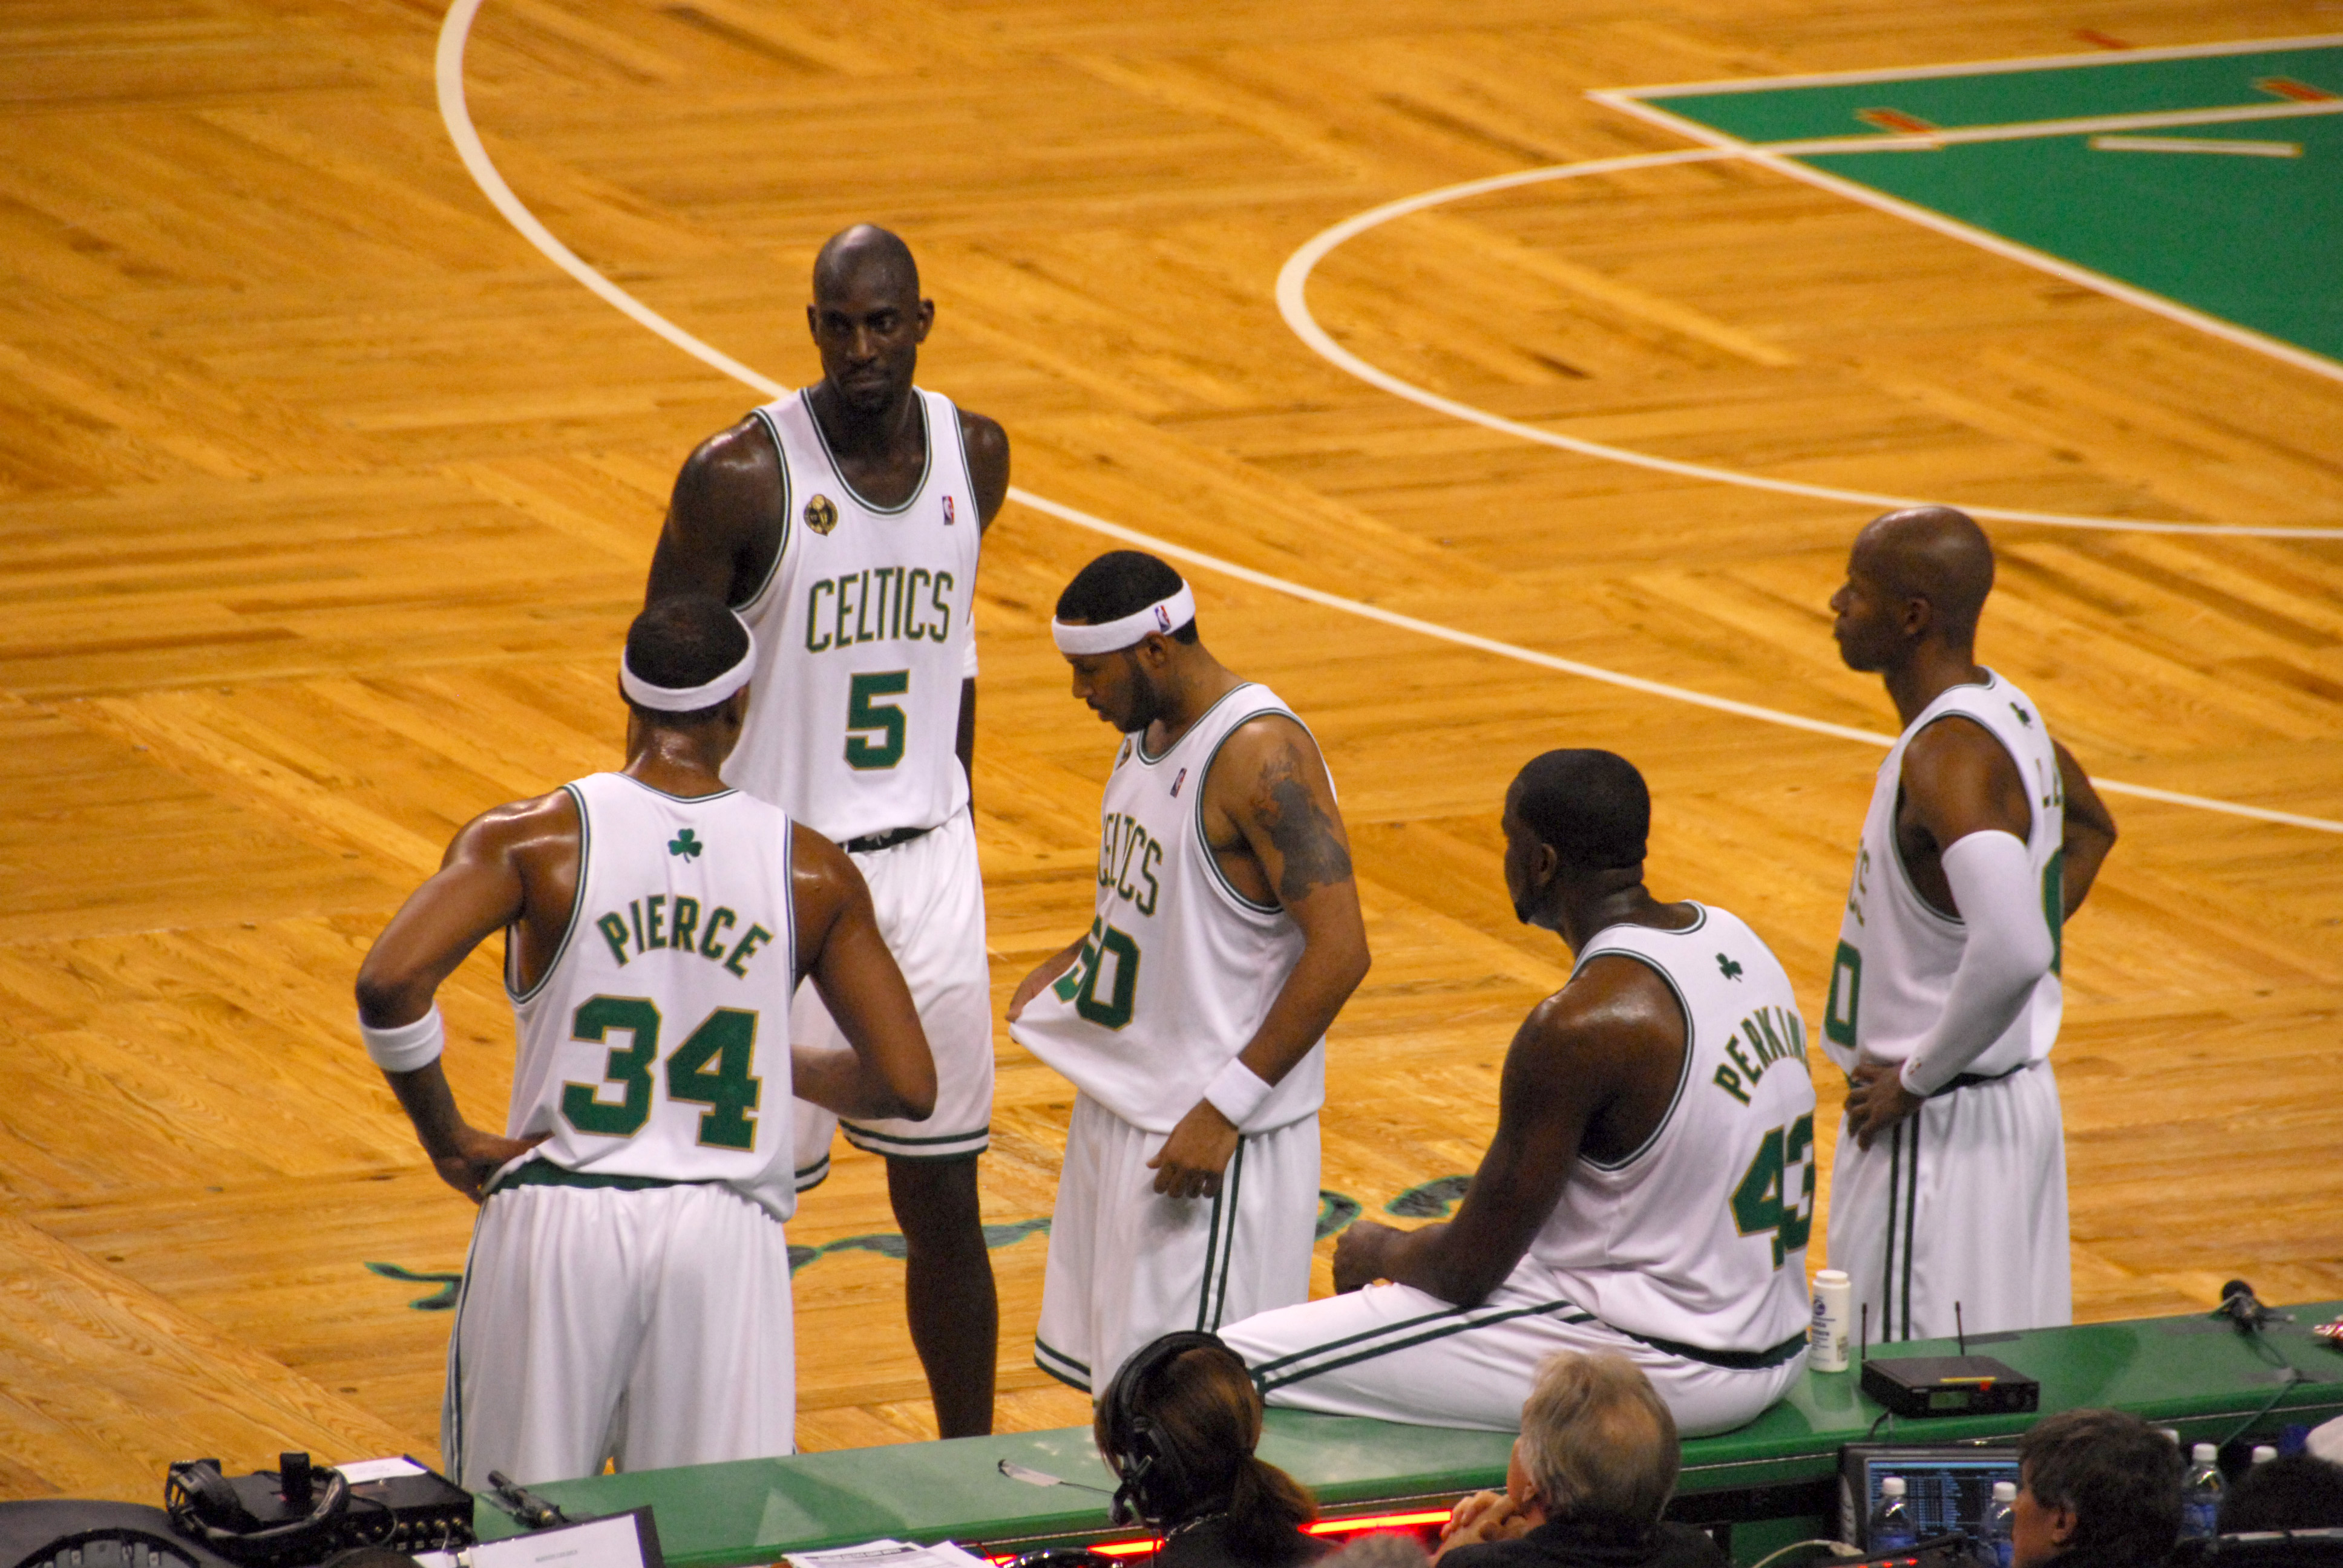 bfcfca8662c Boston Celtics - Wikiwand